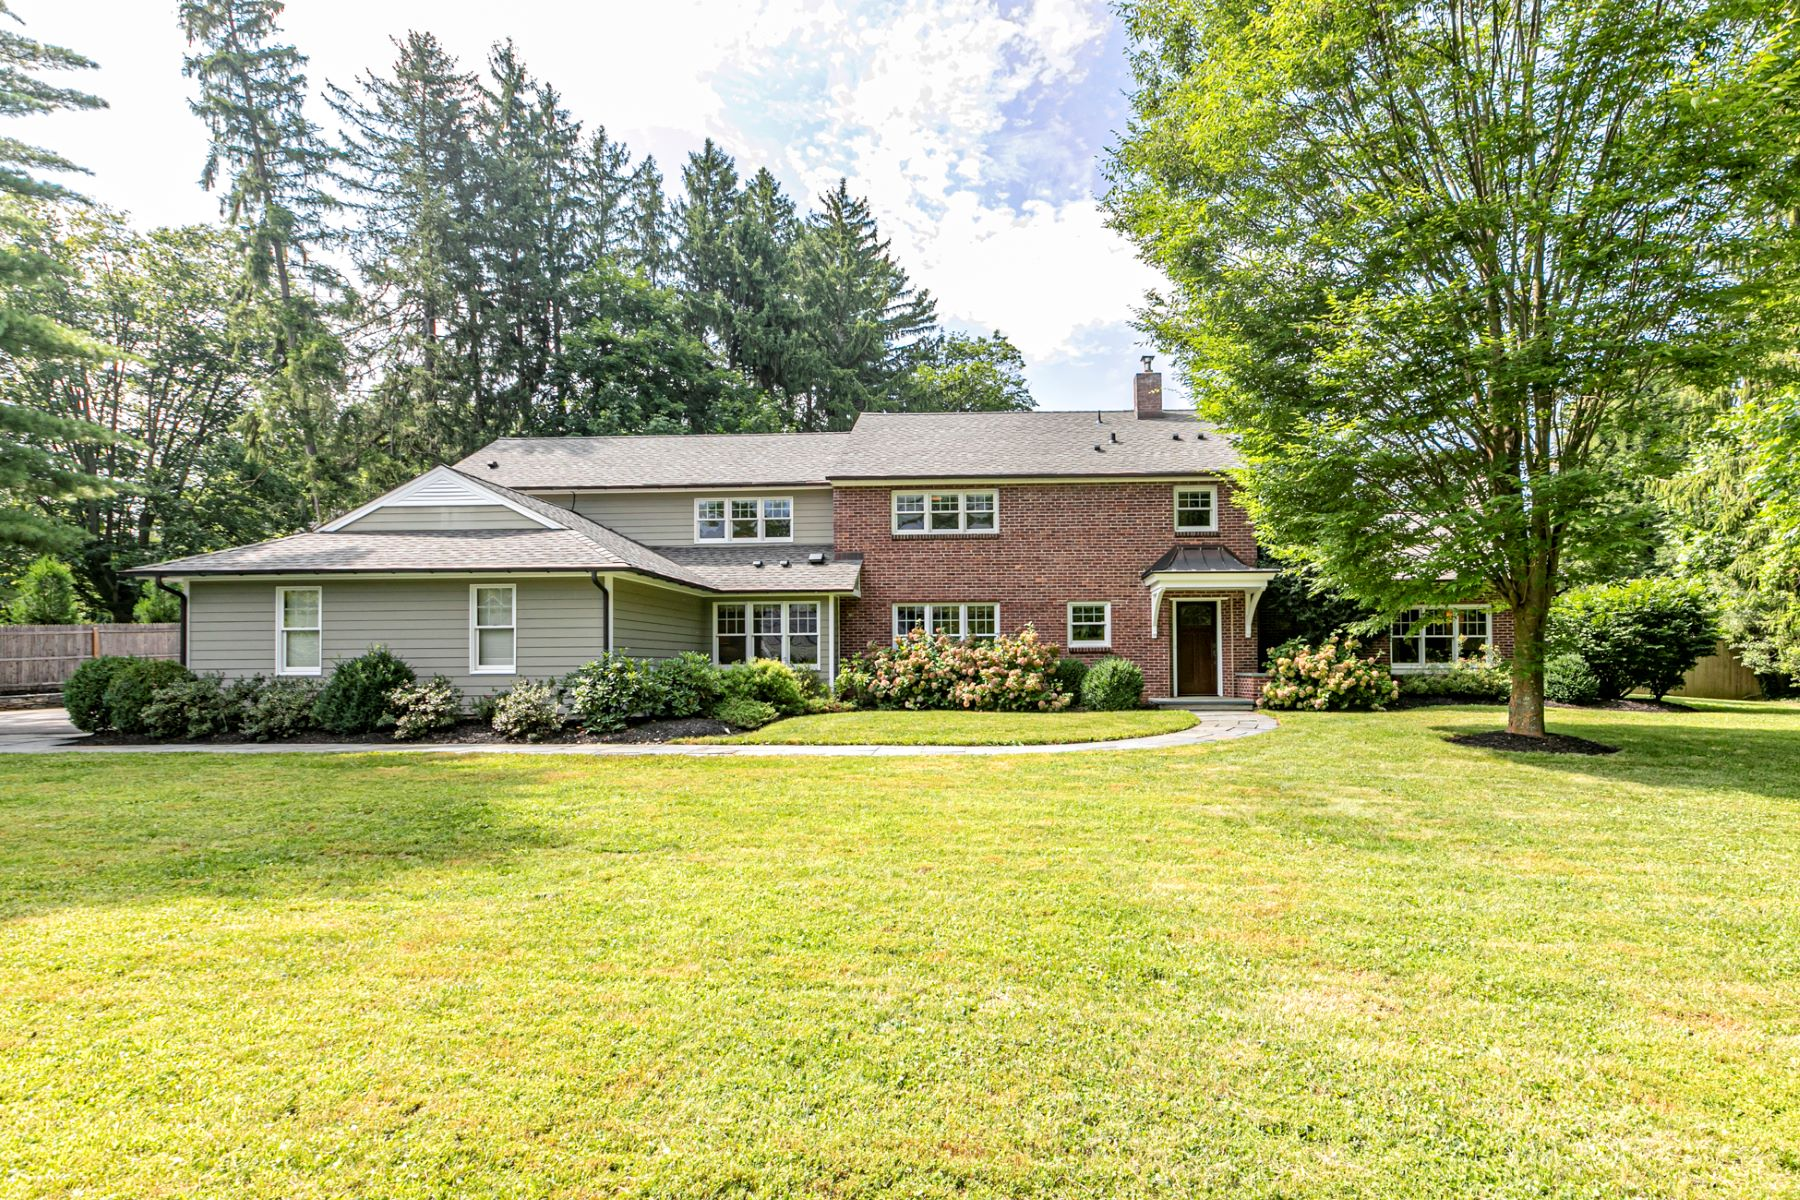 Single Family Homes for Sale at Handsomely Updated With Lots of High-End Comforts 268 Edgerstoune Road, Princeton, New Jersey 08540 United States